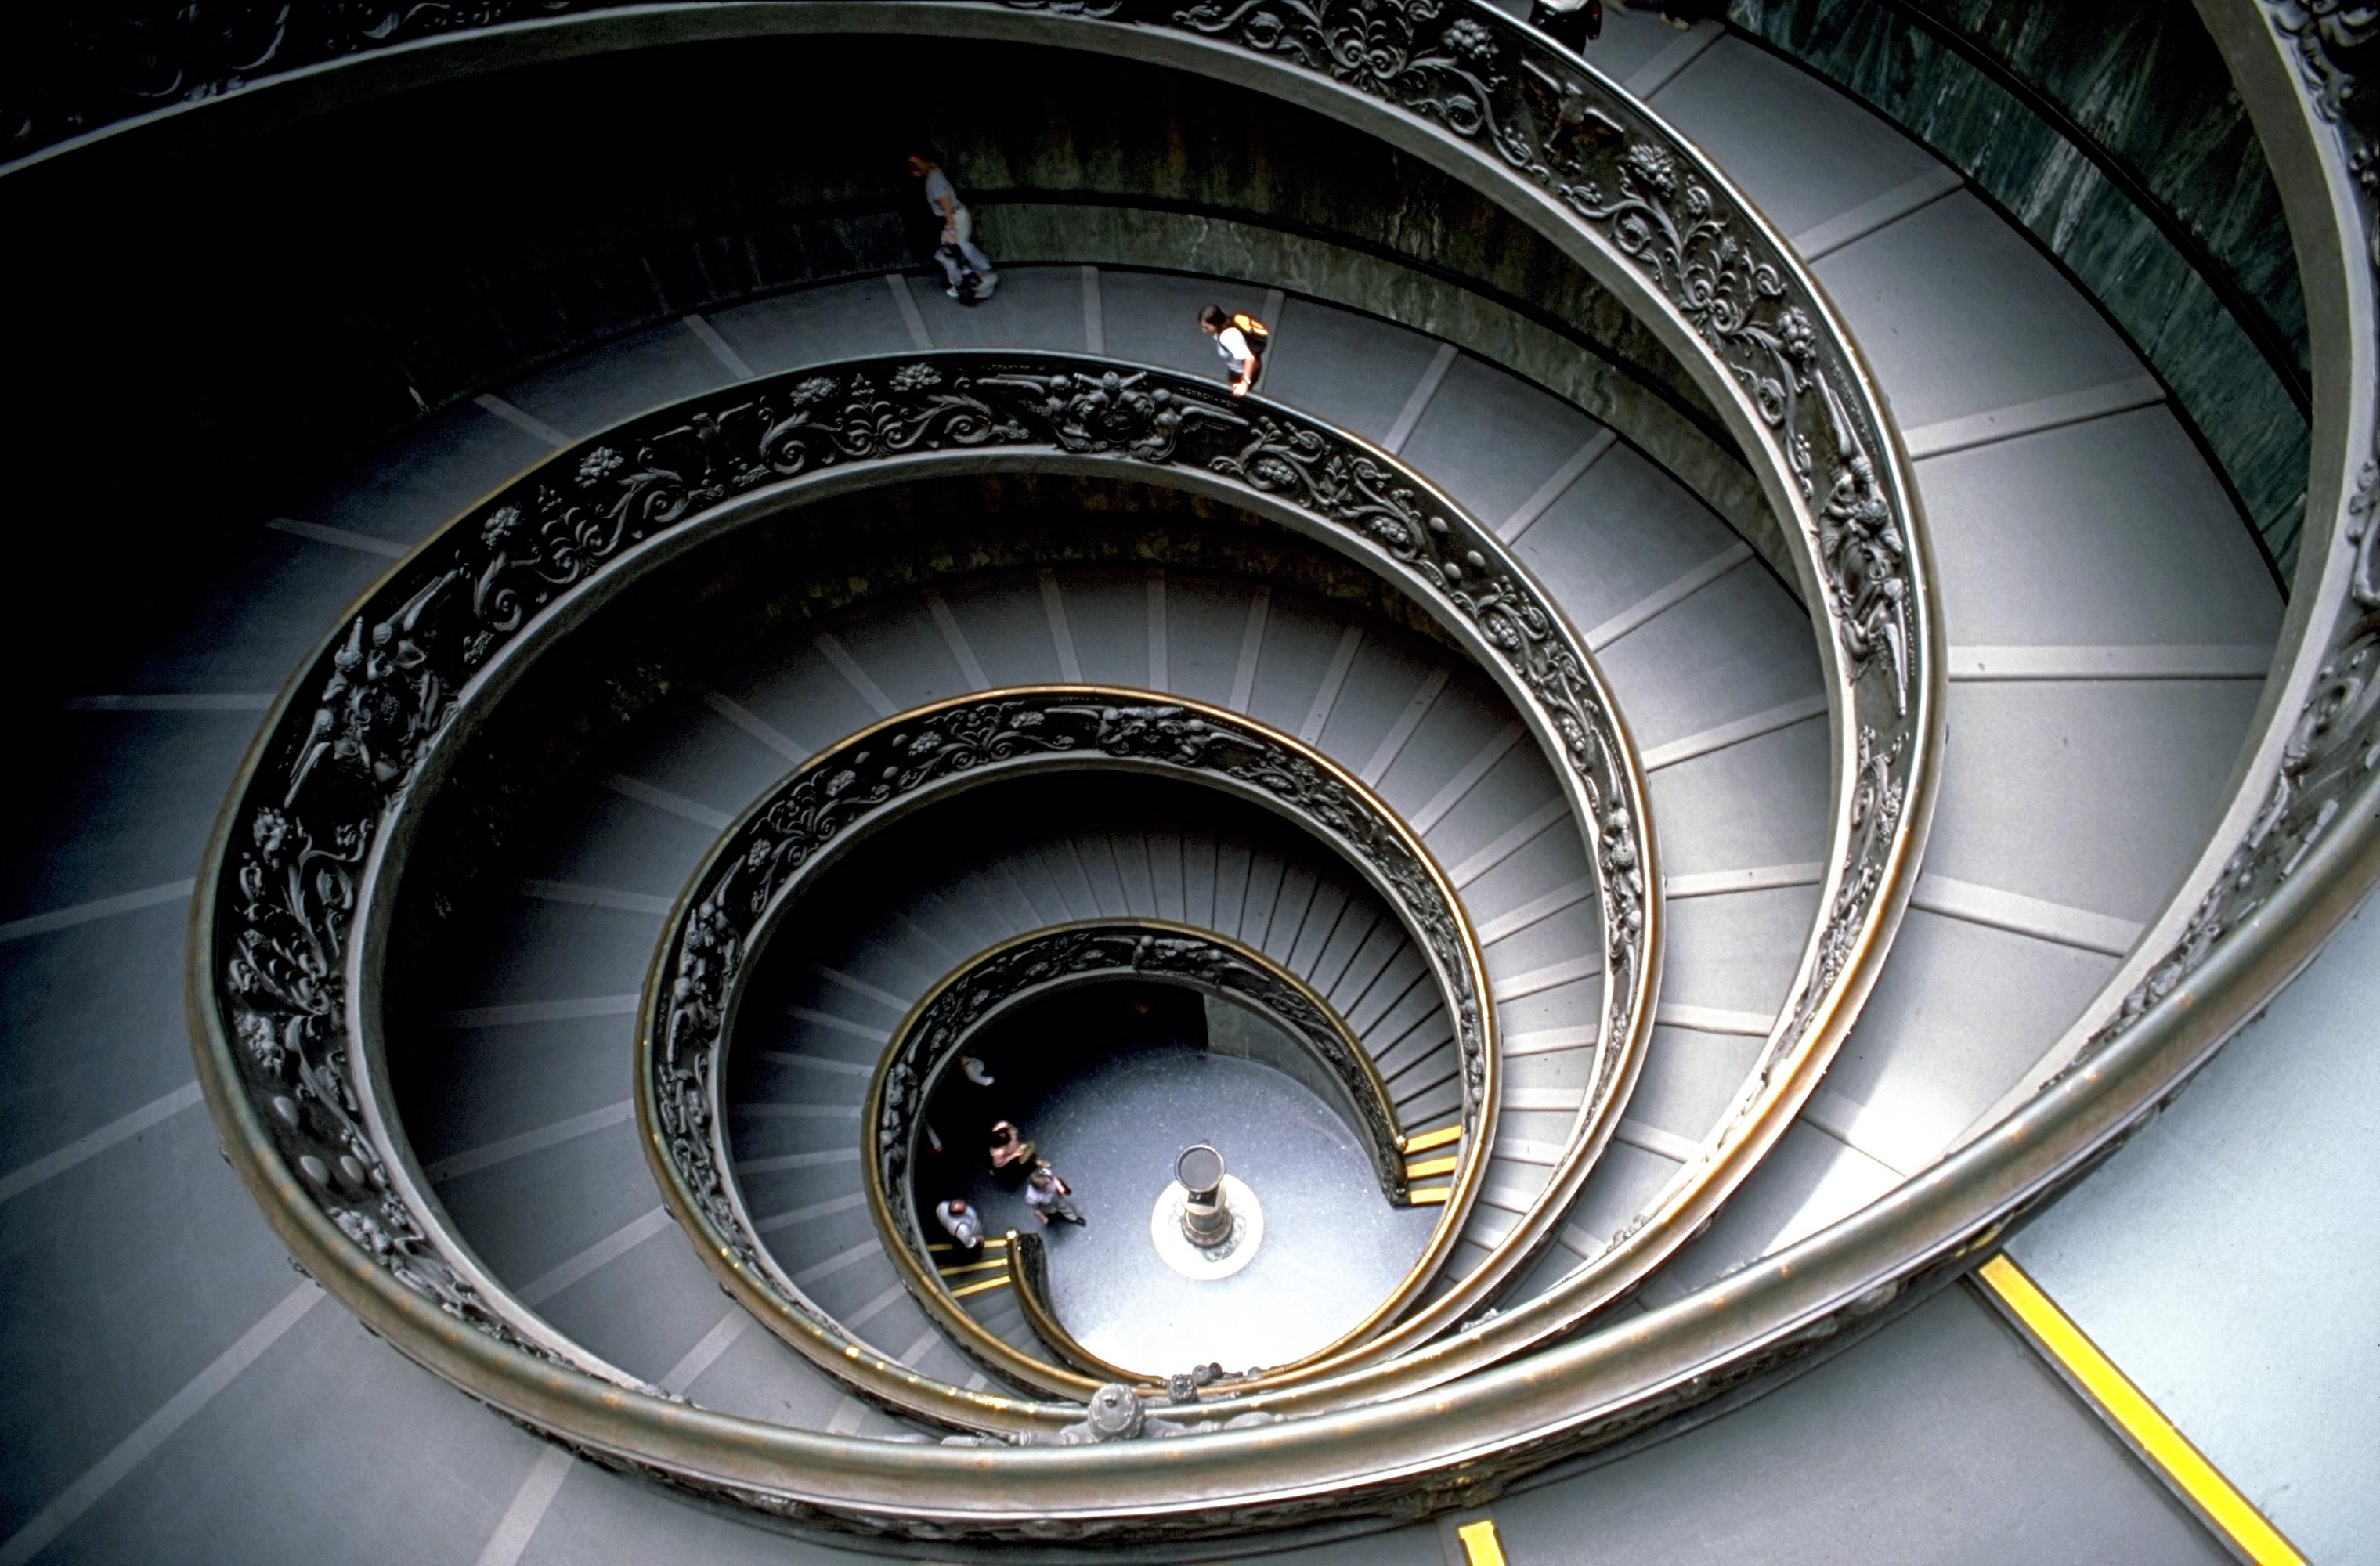 Staircase in Vatican Museum